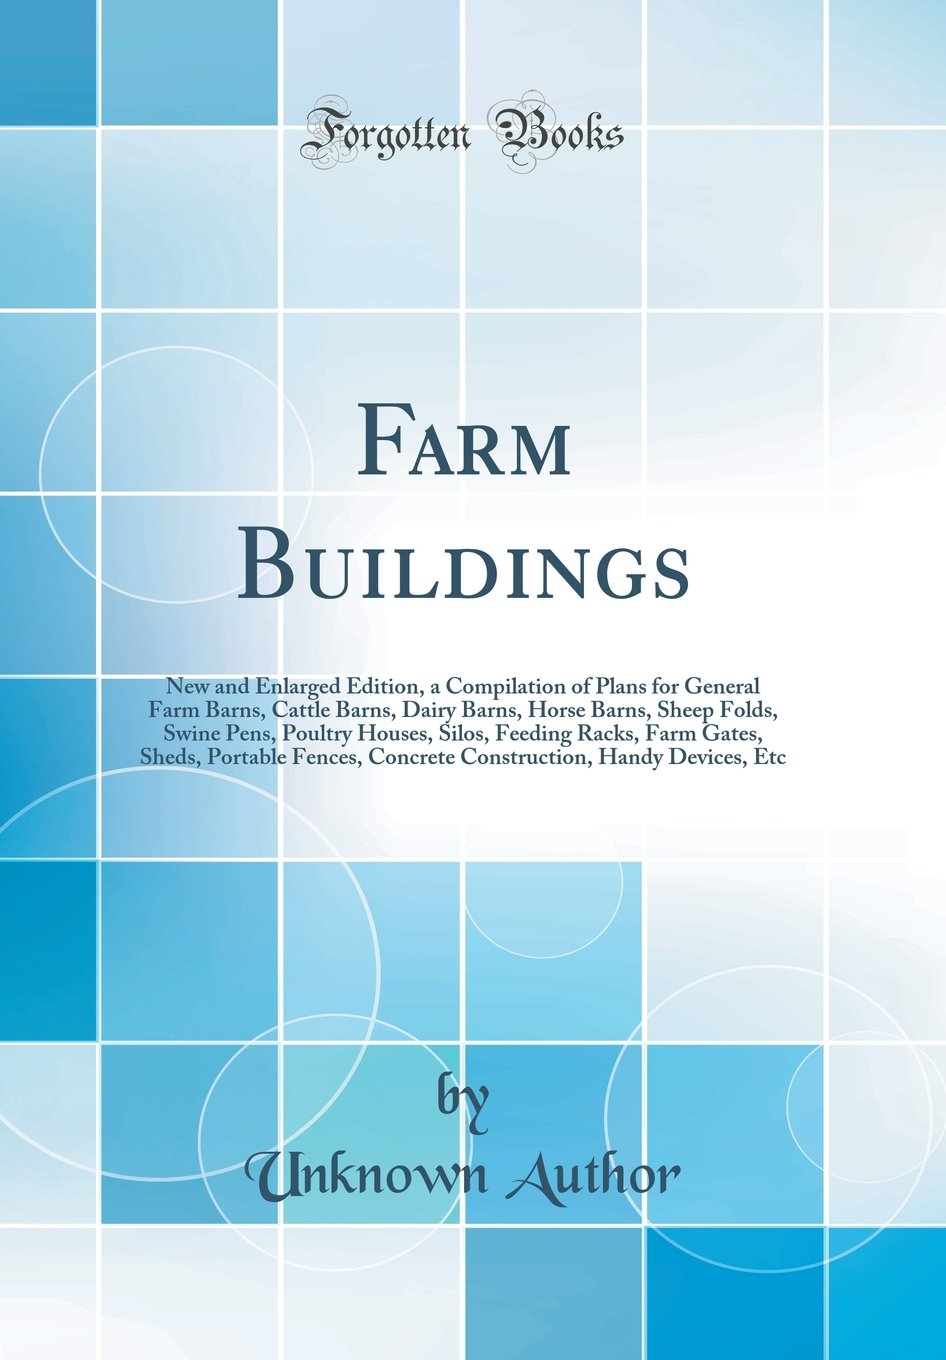 Download Farm Buildings: New and Enlarged Edition, a Compilation of Plans for General Farm Barns, Cattle Barns, Dairy Barns, Horse Barns, Sheep Folds, Swine ... Portable Fences, Concrete Construction, Hand ePub fb2 book